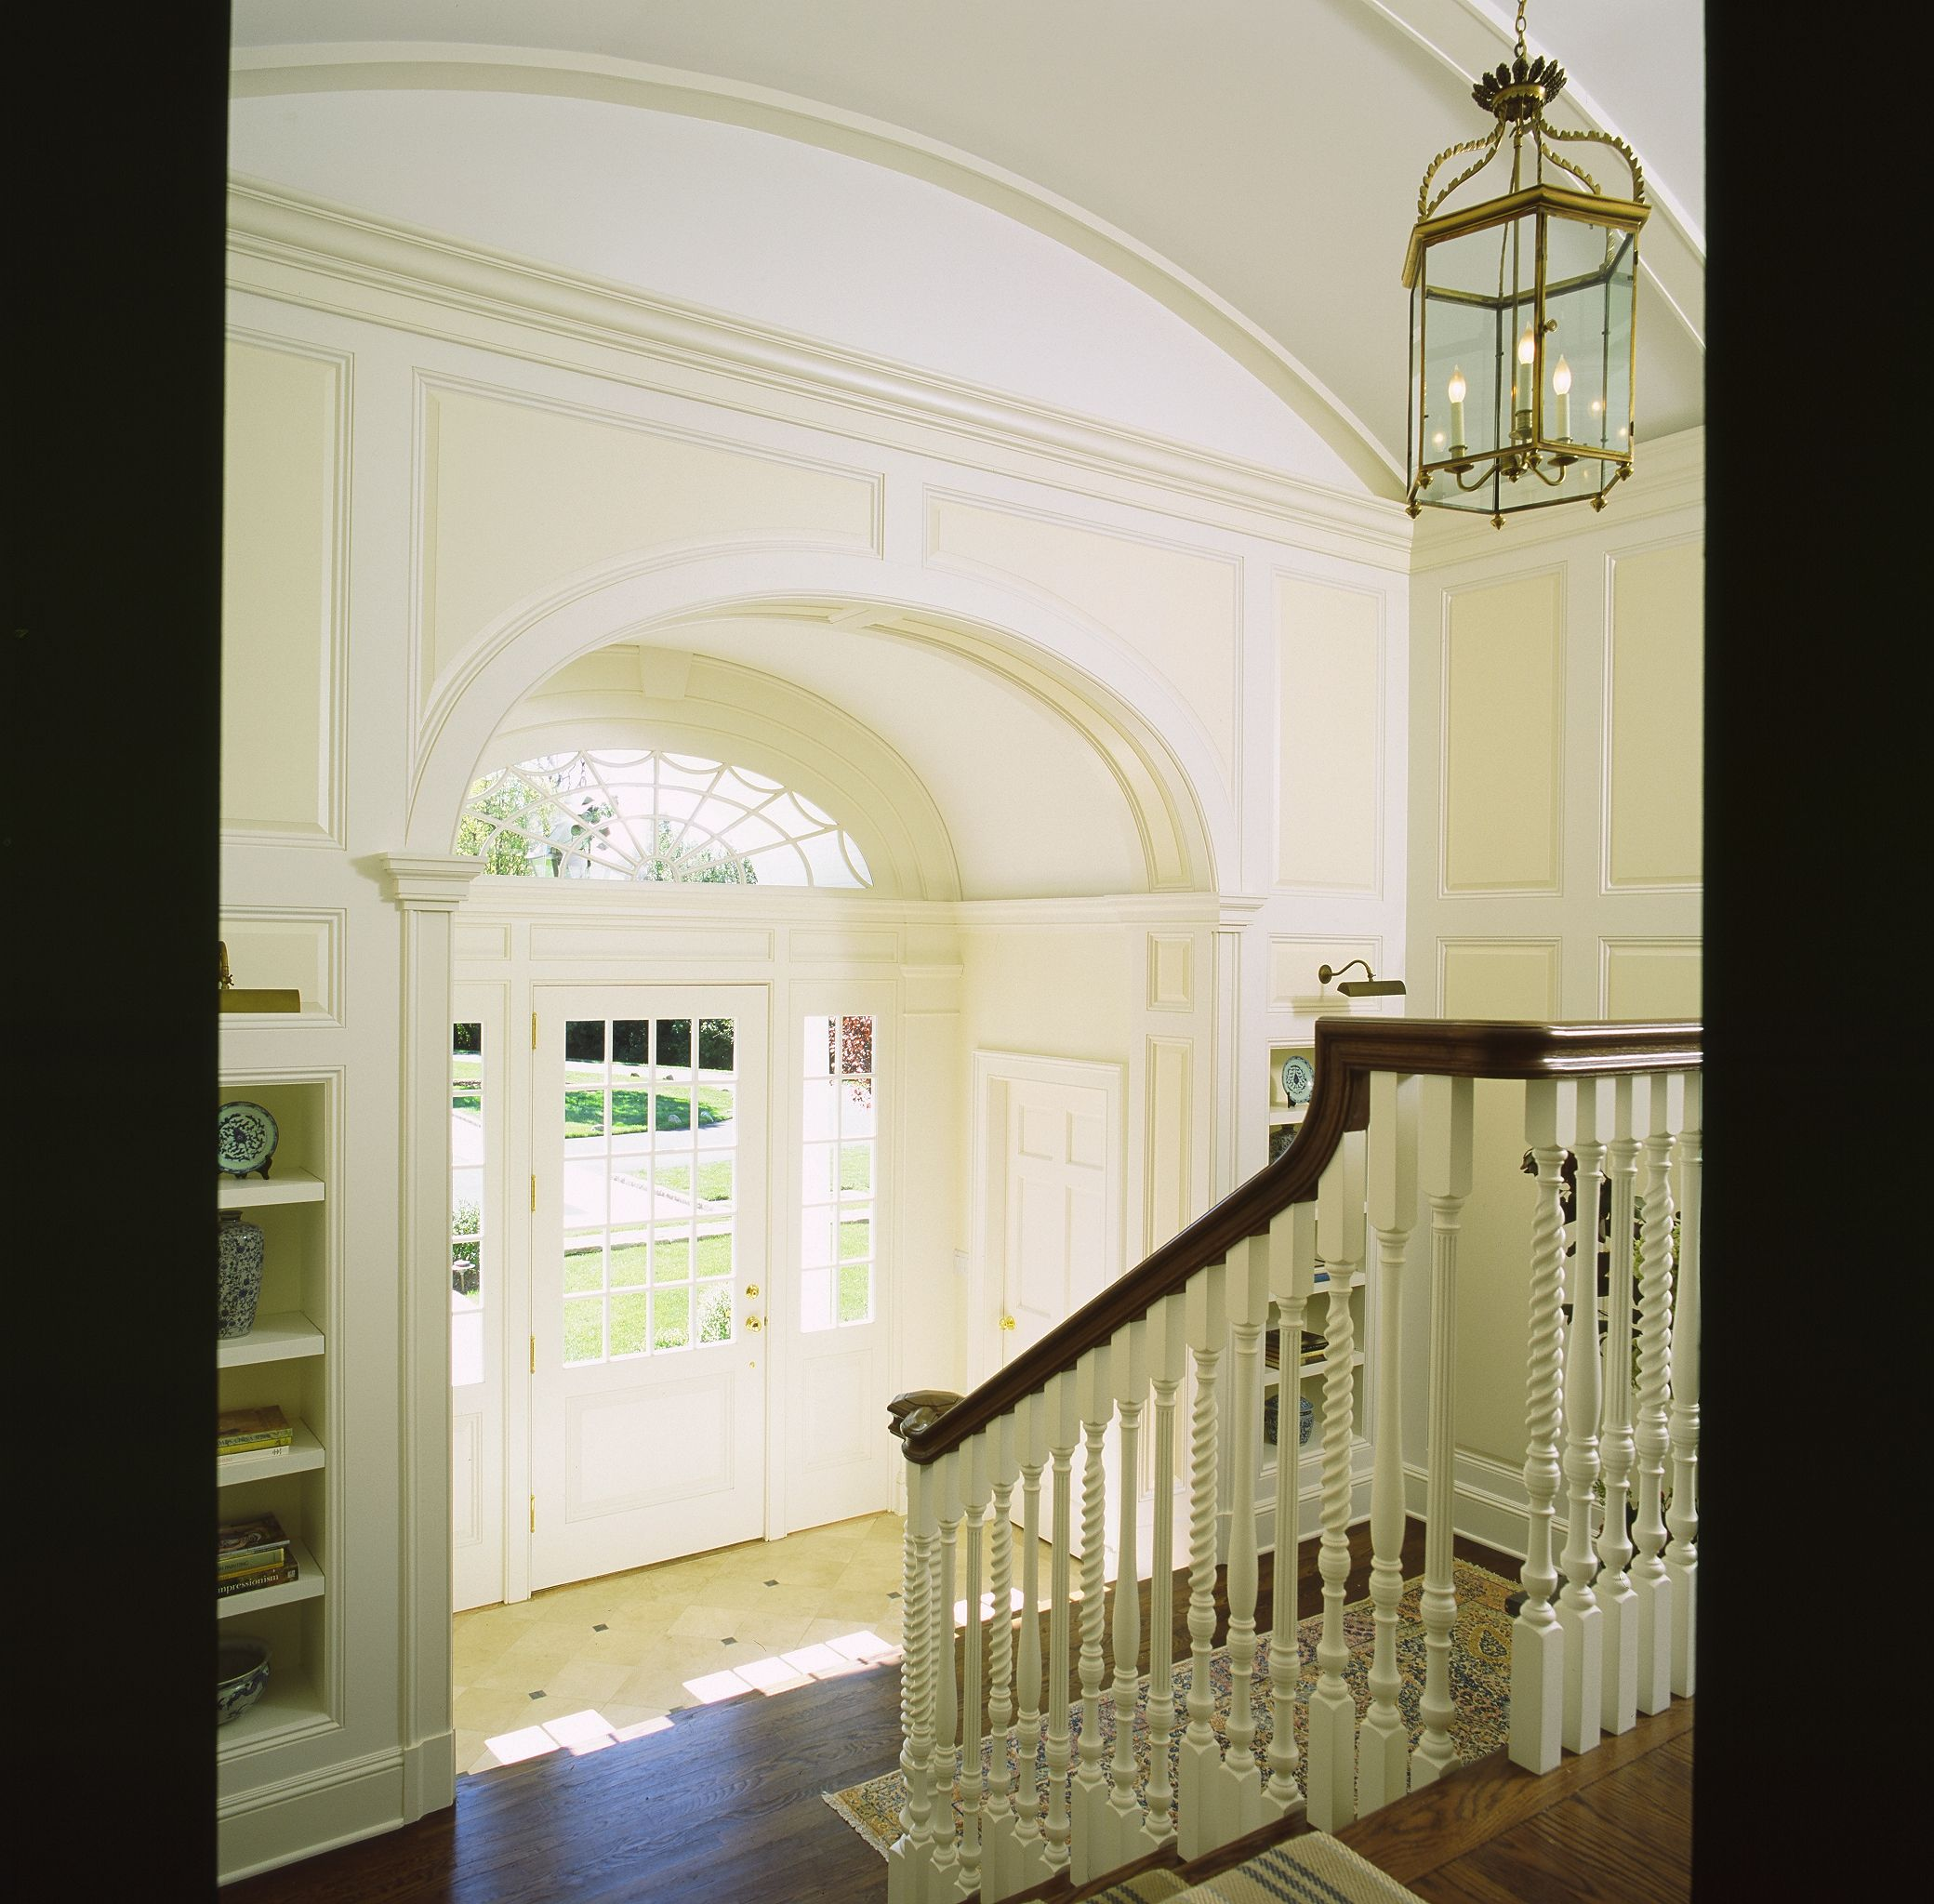 pimlico winning interiors design an beiles award fairfield canaan ct firm residential county is designers interior new